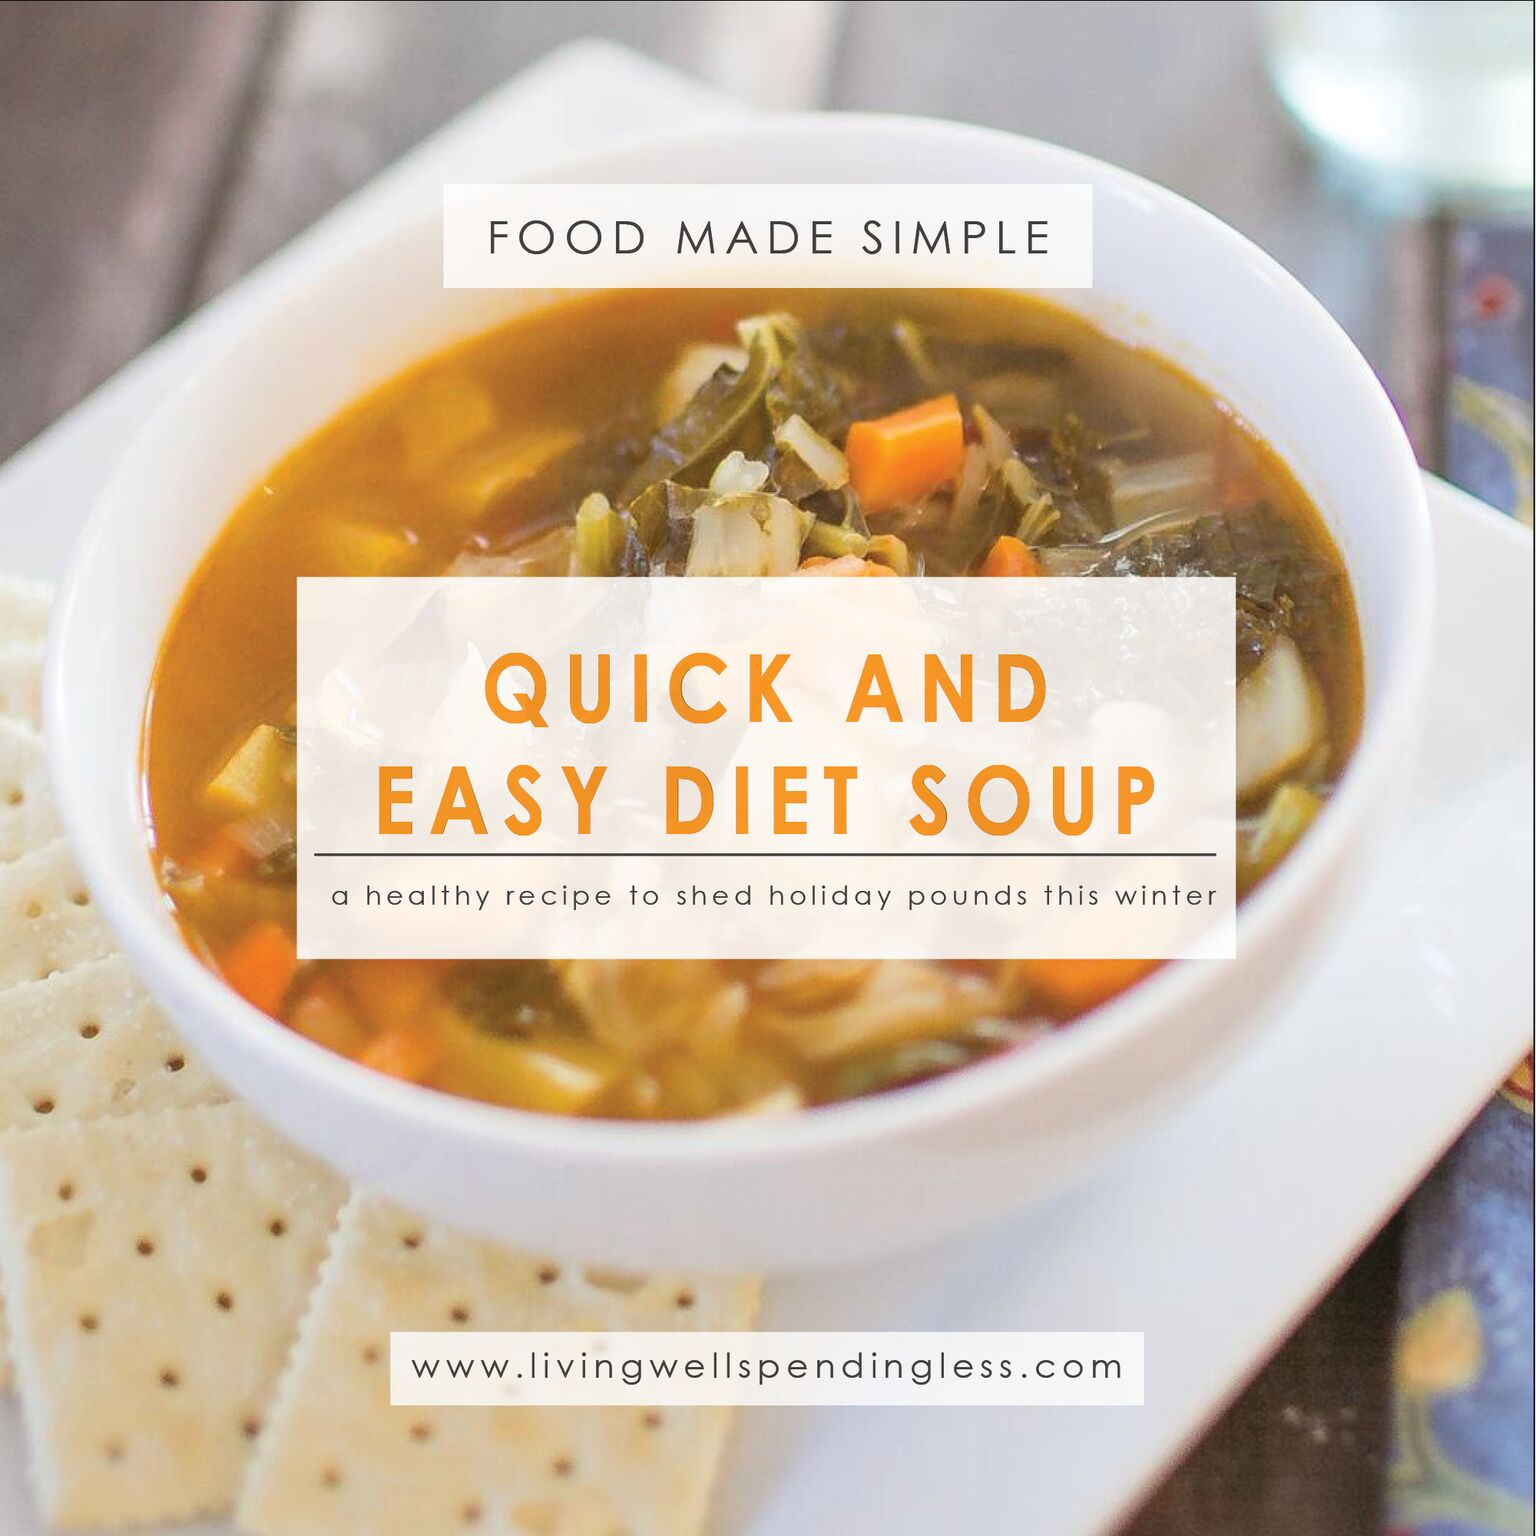 Quick and easy diet souphealthy recipe for weight loss winter diet soup recipe healthy winter soup slimming soups fat burning soups forumfinder Images